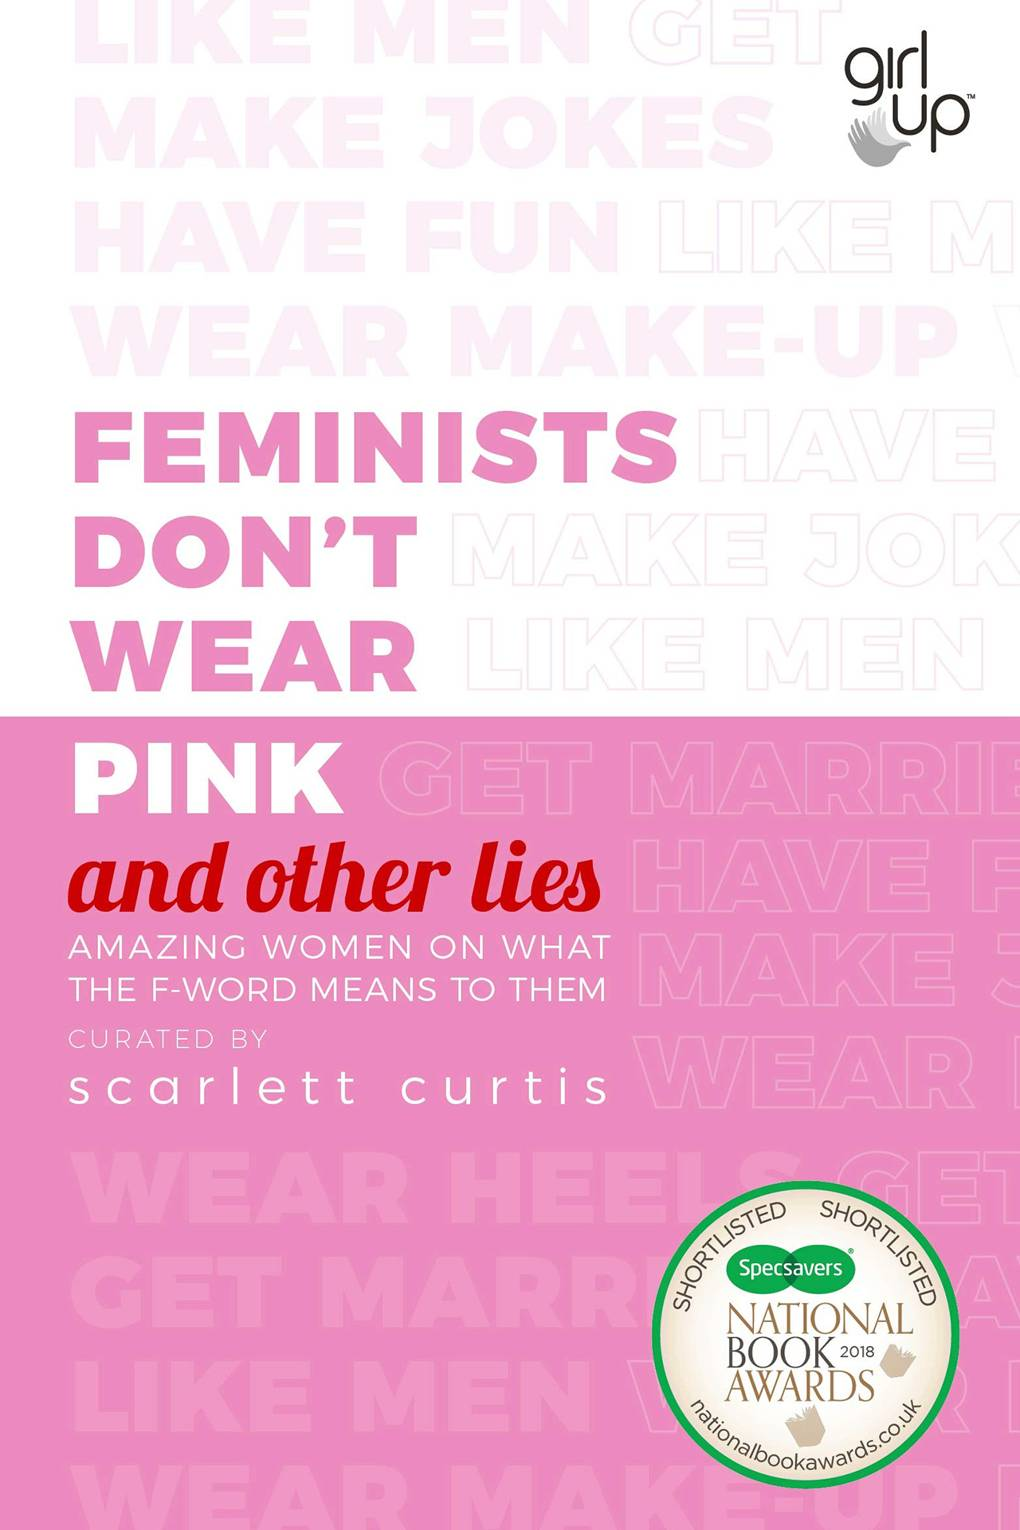 The Best Feminist Books To Empower And Educate  Glamour Uk  I Need Help With Writing also Tender Writing Services  The Kite Runner Essay Thesis